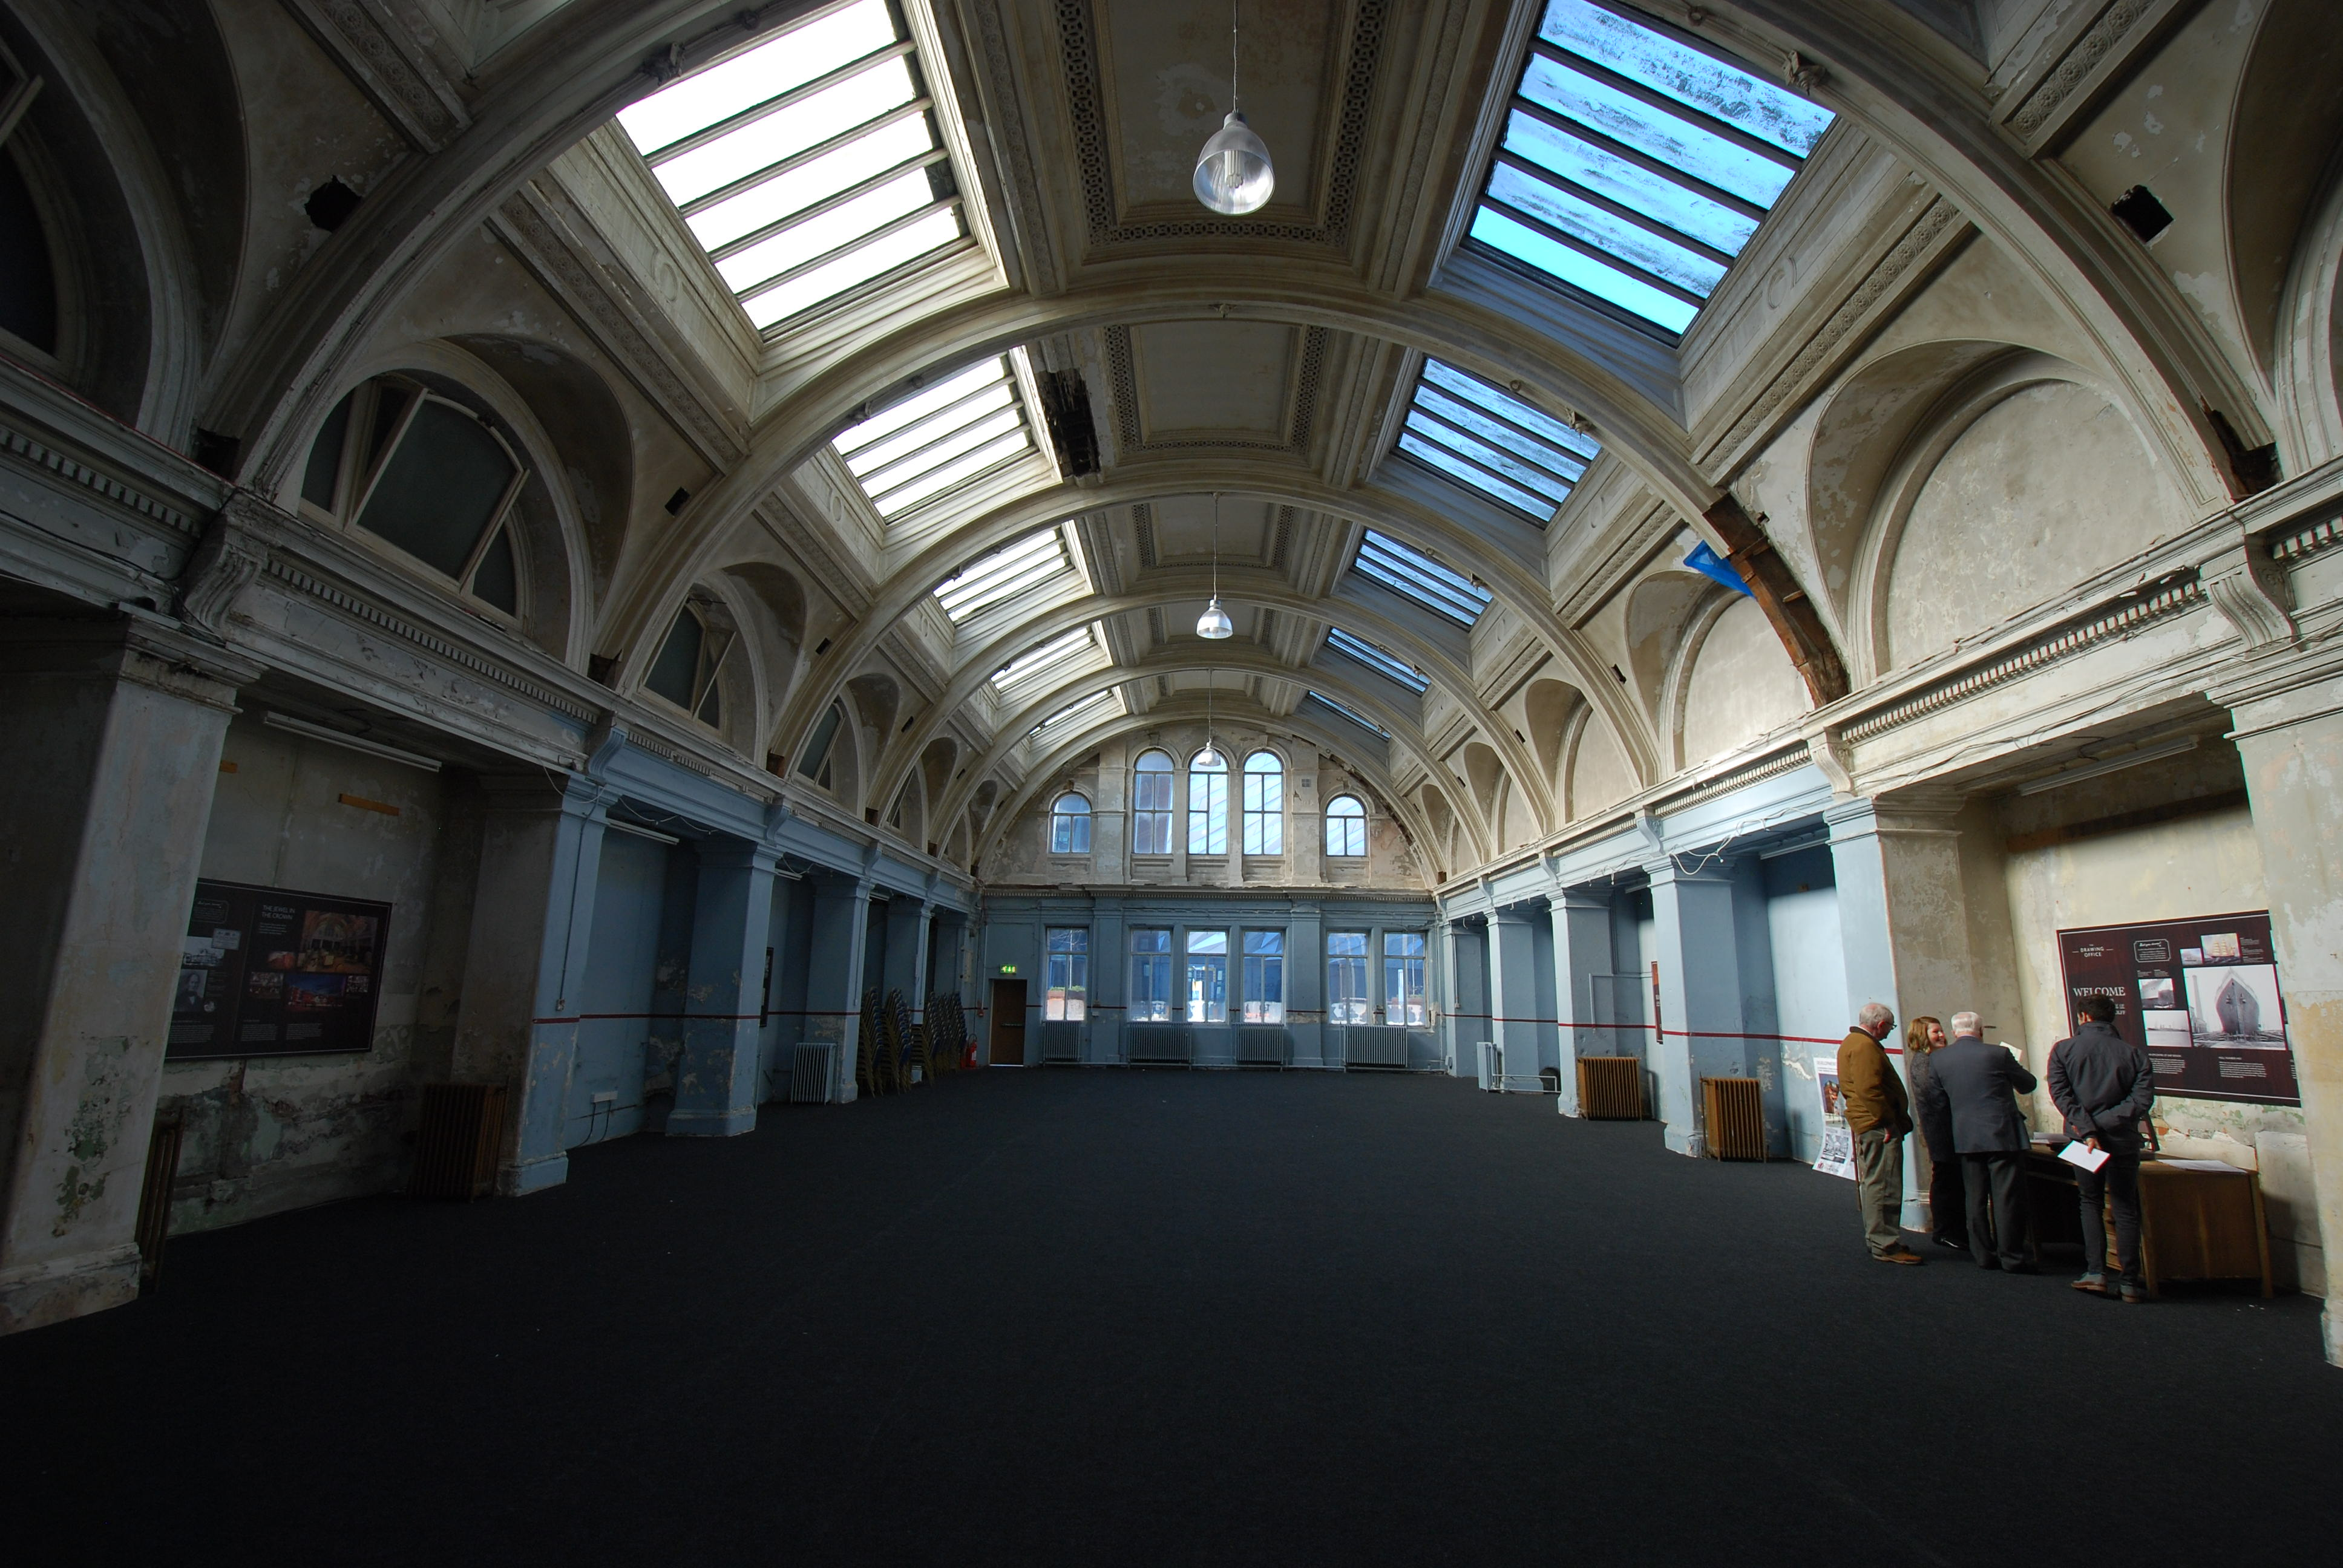 Drawn office harland and wolff Harland Wolff Reunion Event CommunityNI